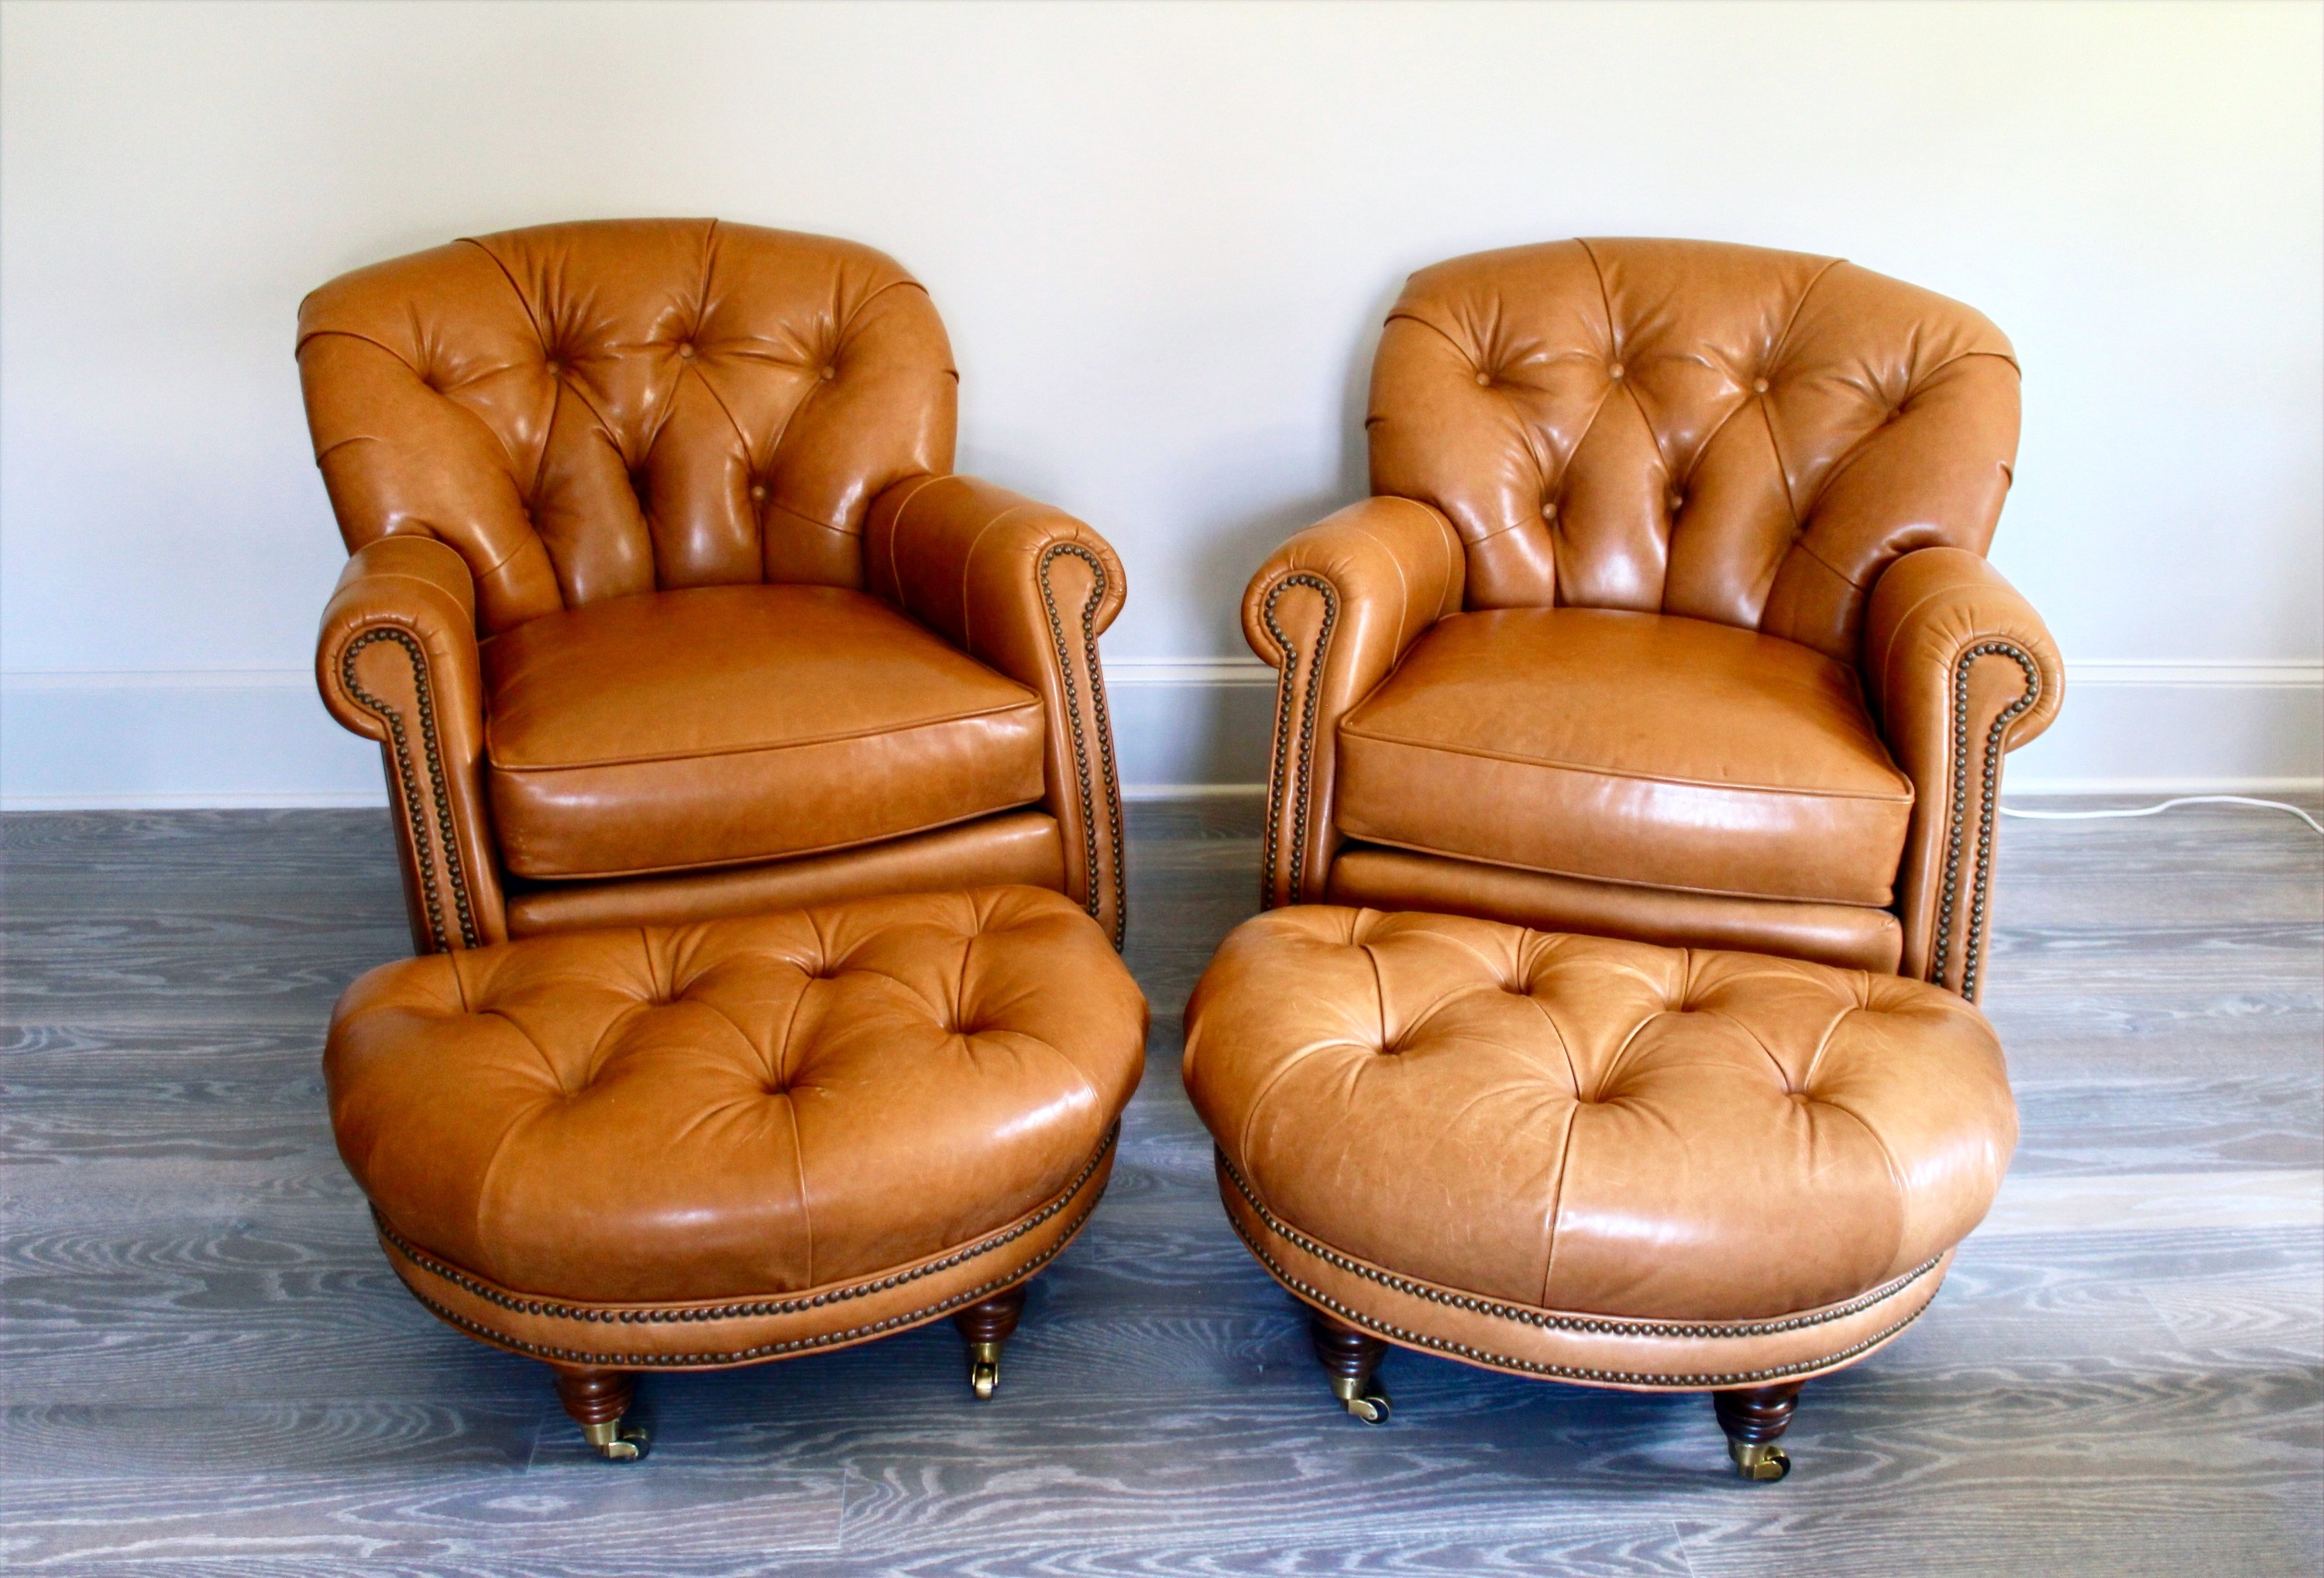 SOLD: Pair of Michael Taylor Chairs